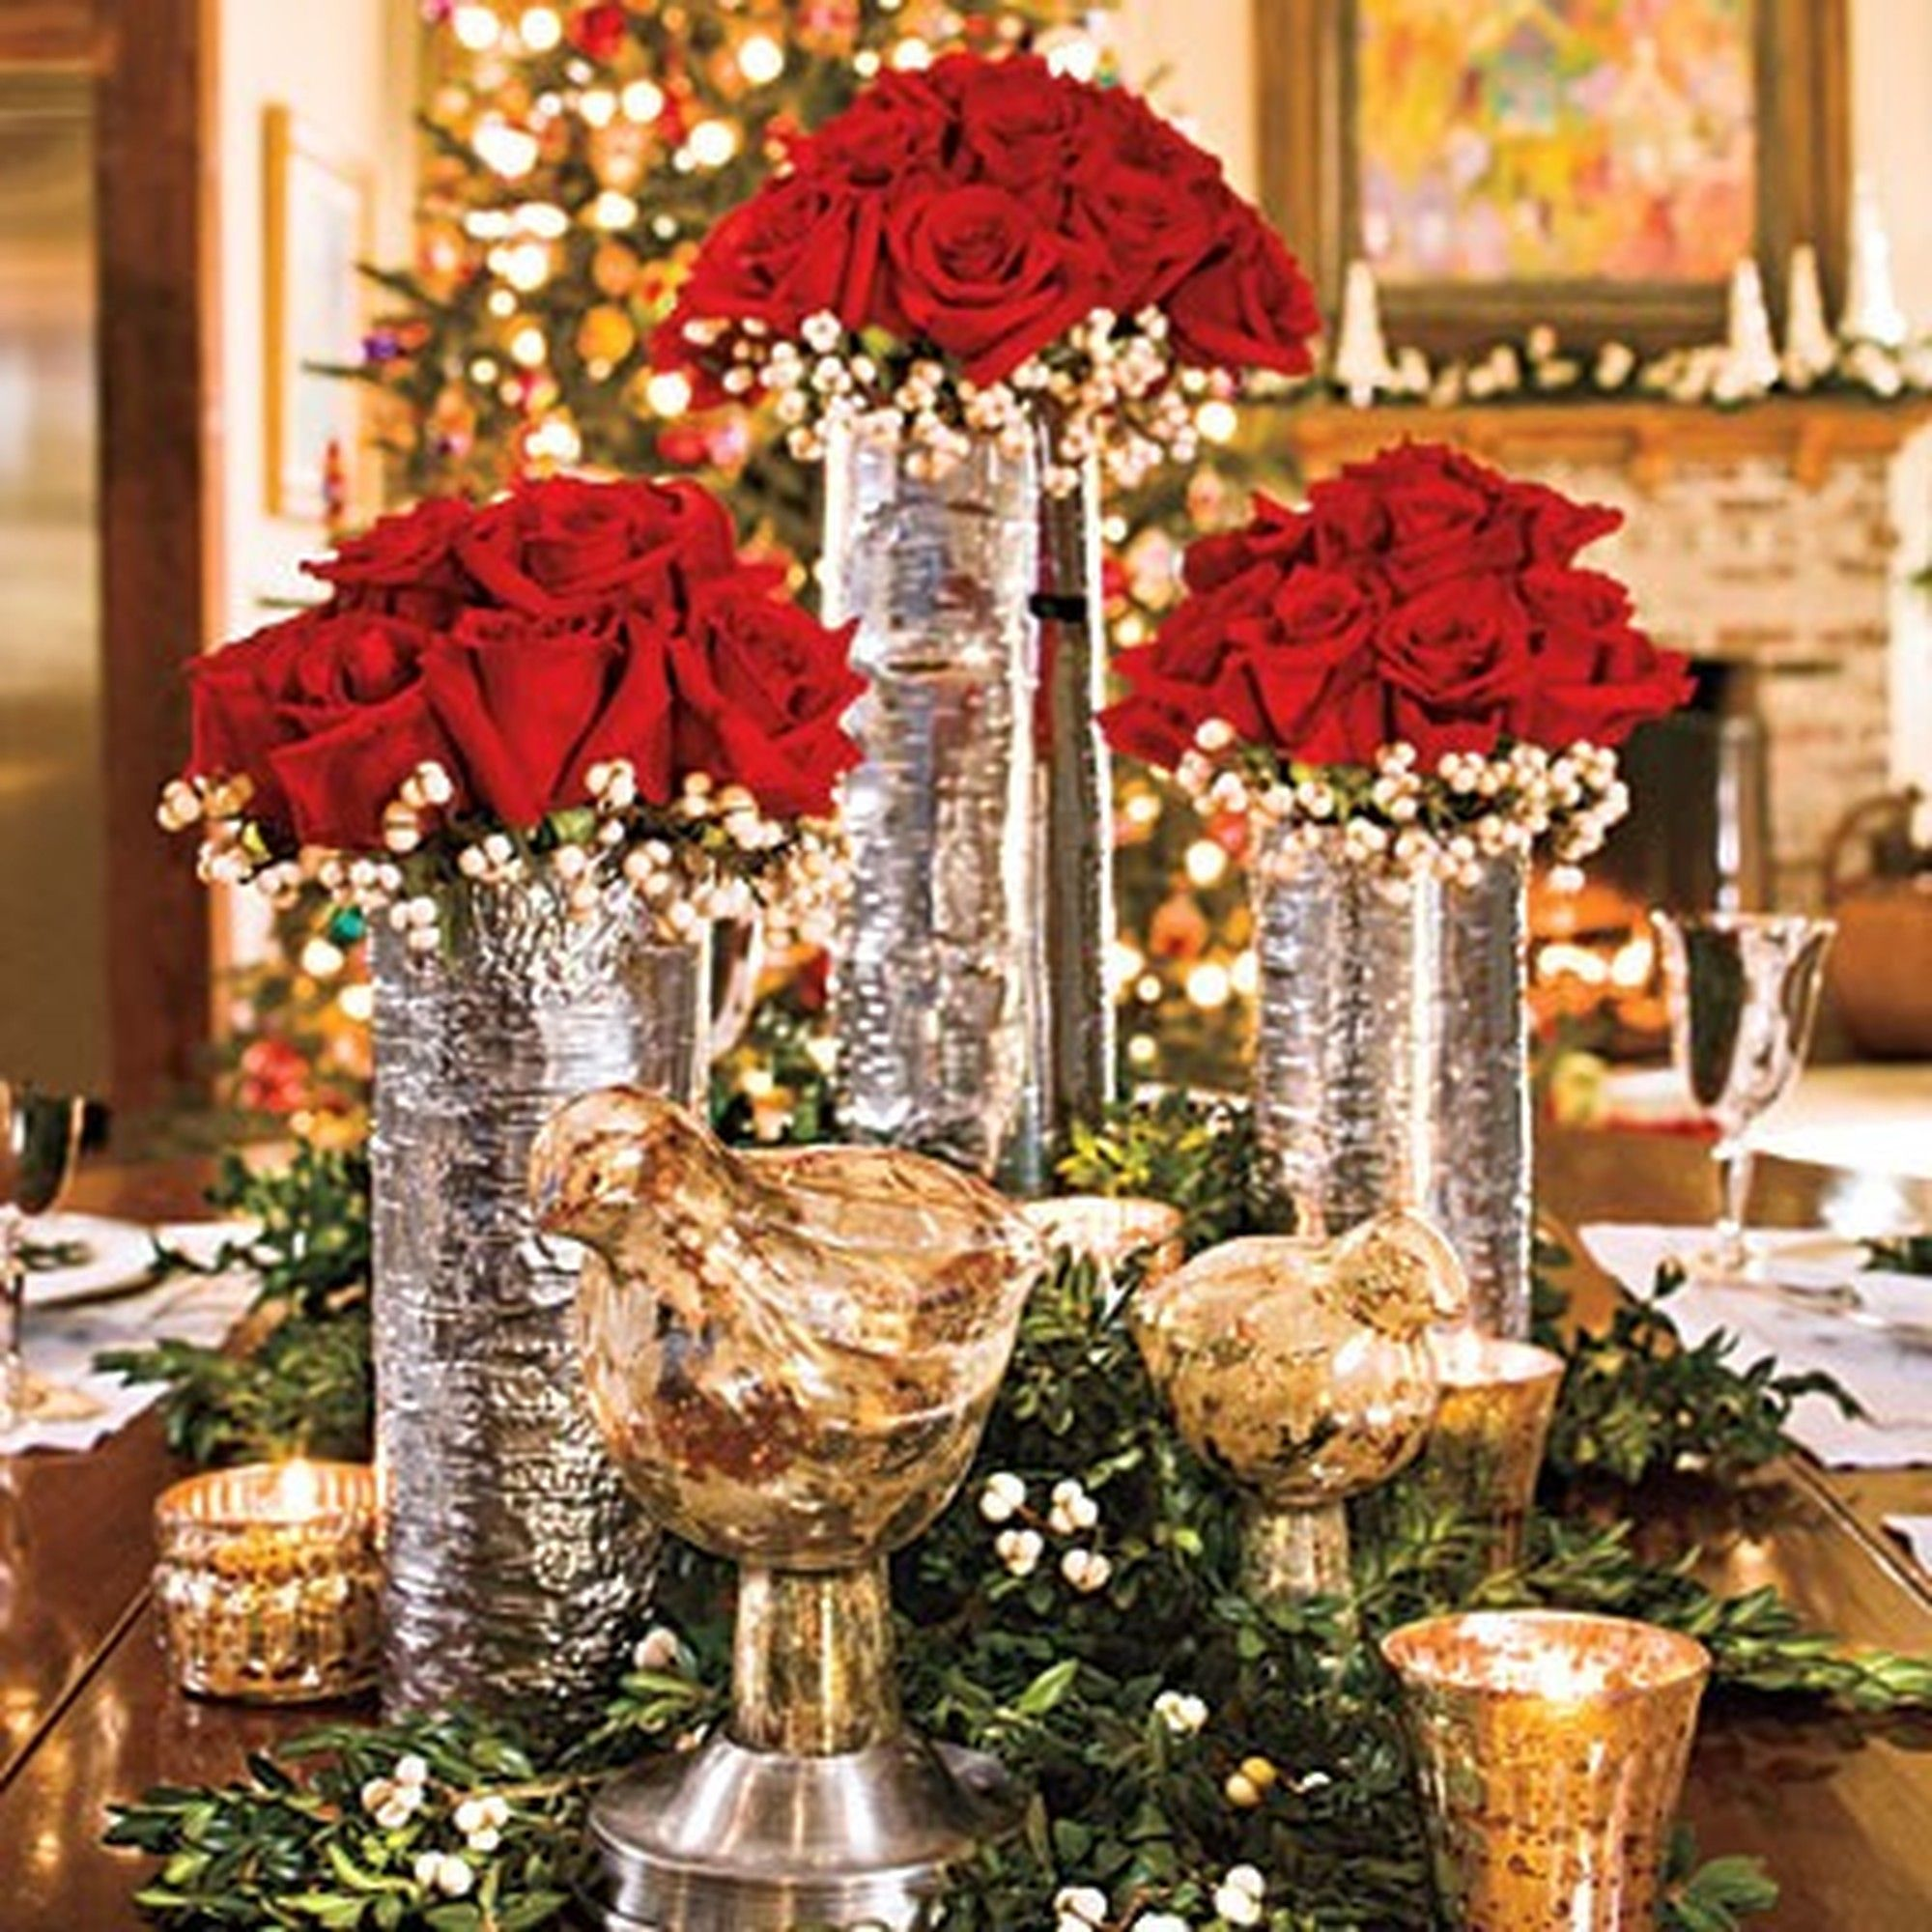 Beauty and the beast themed wedding gold roses disney beauty and the beast themed wedding gold roses disney princess wedding centerpiece decorationsred rose centerpieceschristmas junglespirit Image collections